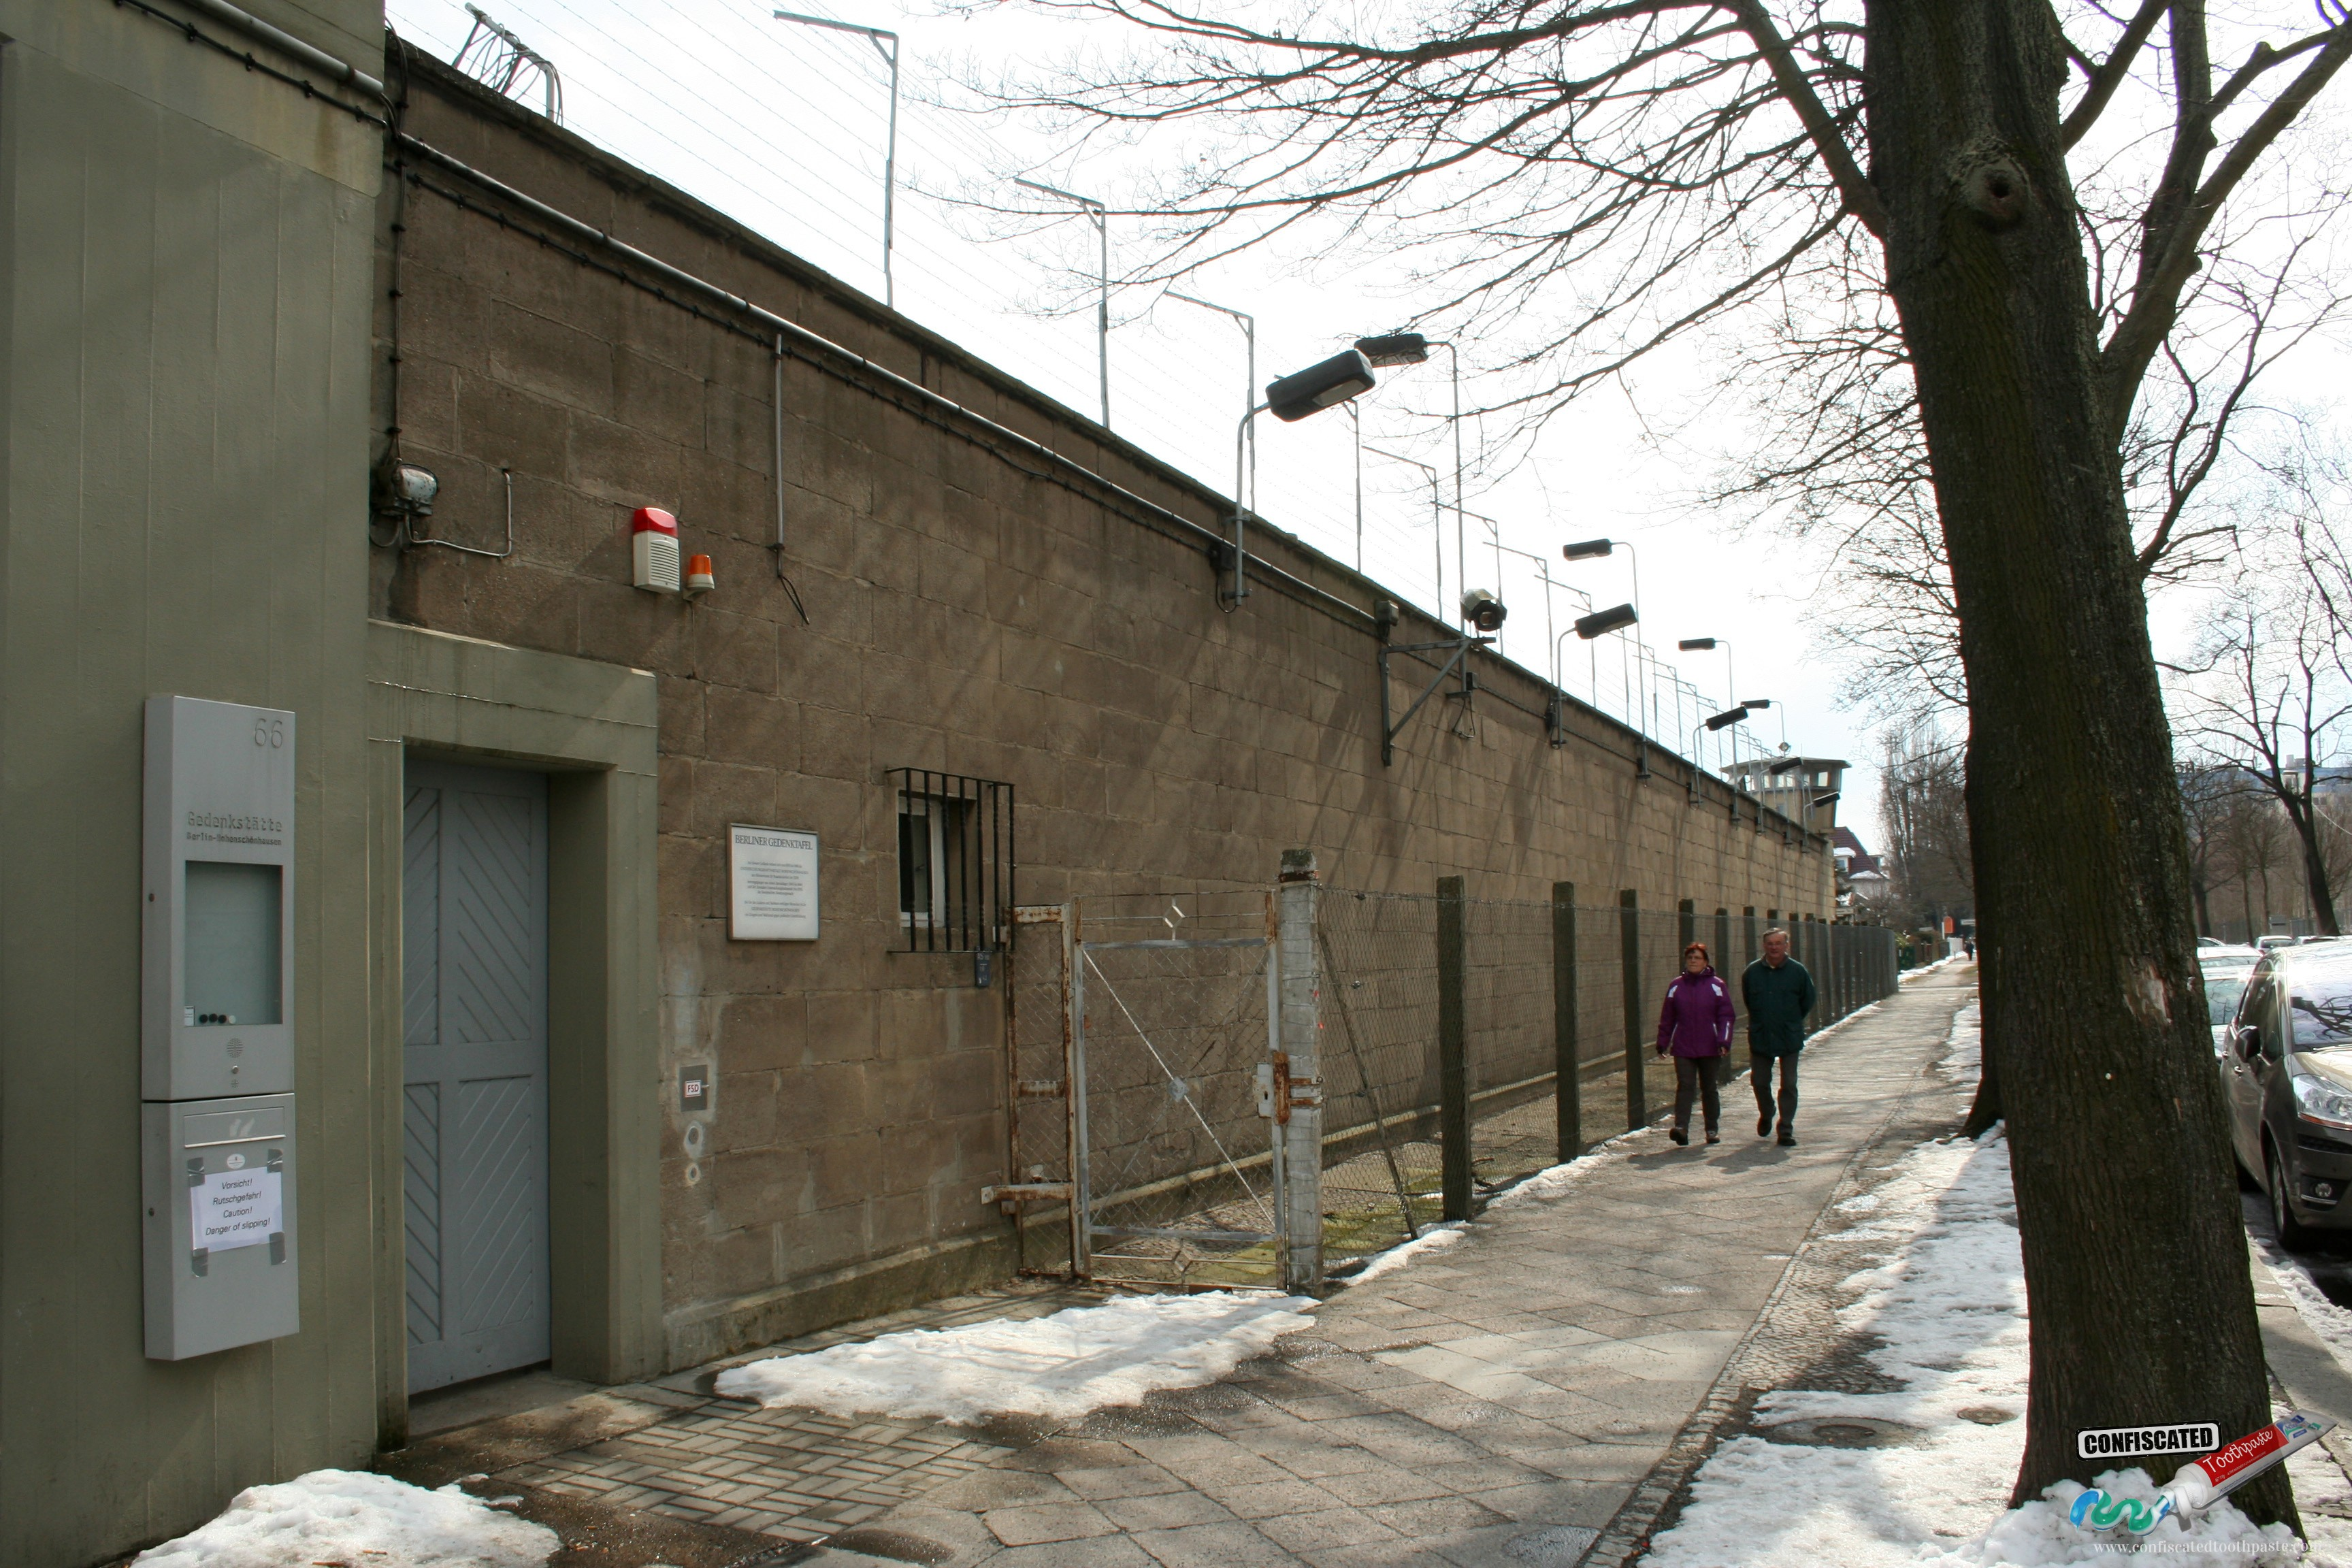 Outside the Stasi prison in the former Hohenschönhausen restricted area, Berlin